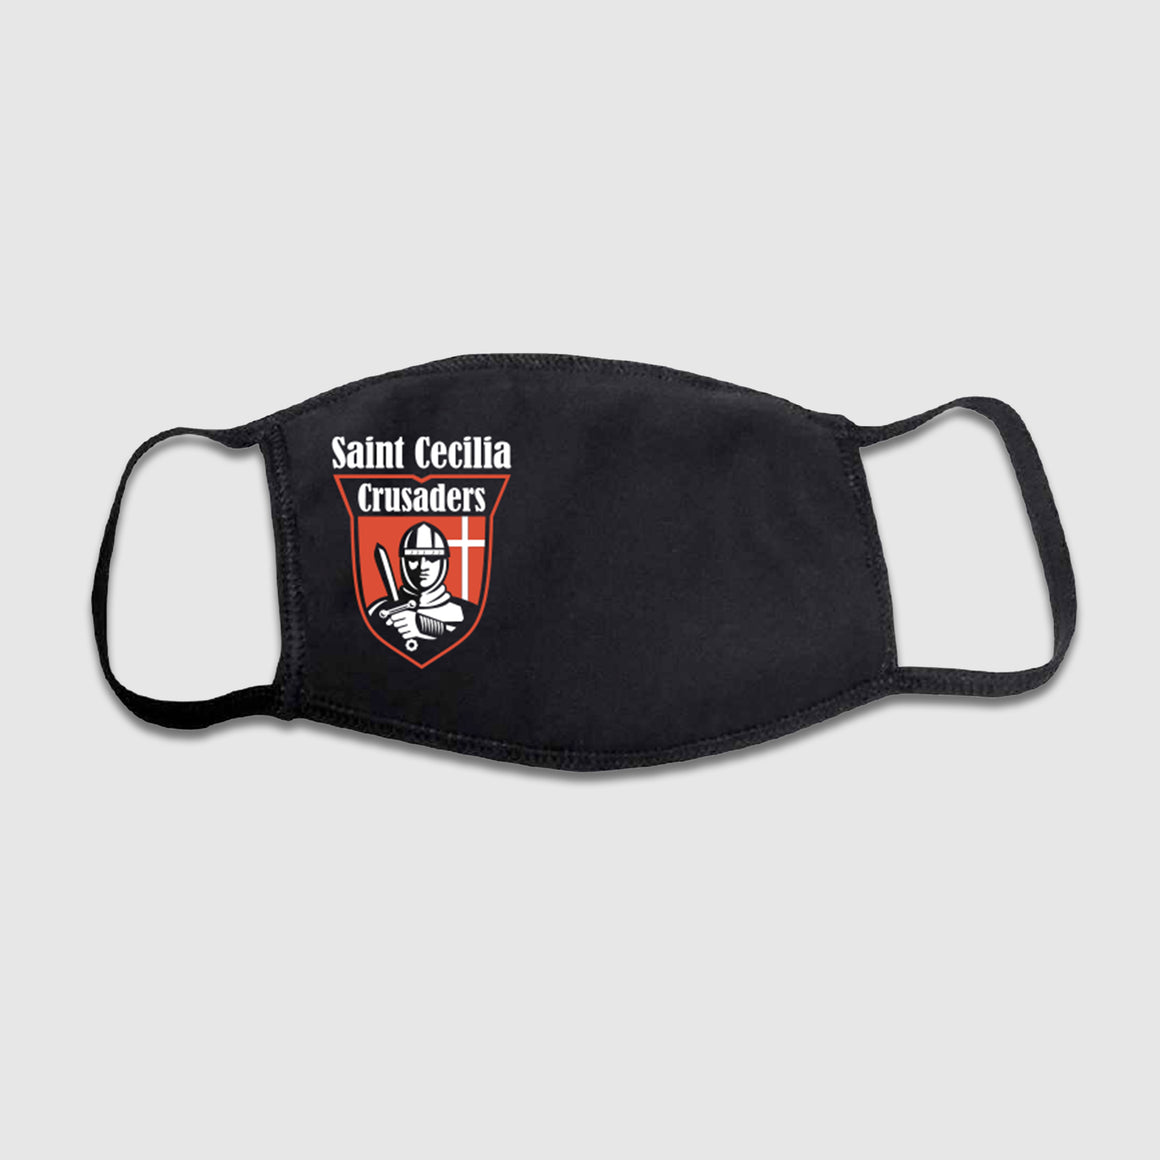 Saint Cecilia Crusaders Face Mask - Cincy Shirts